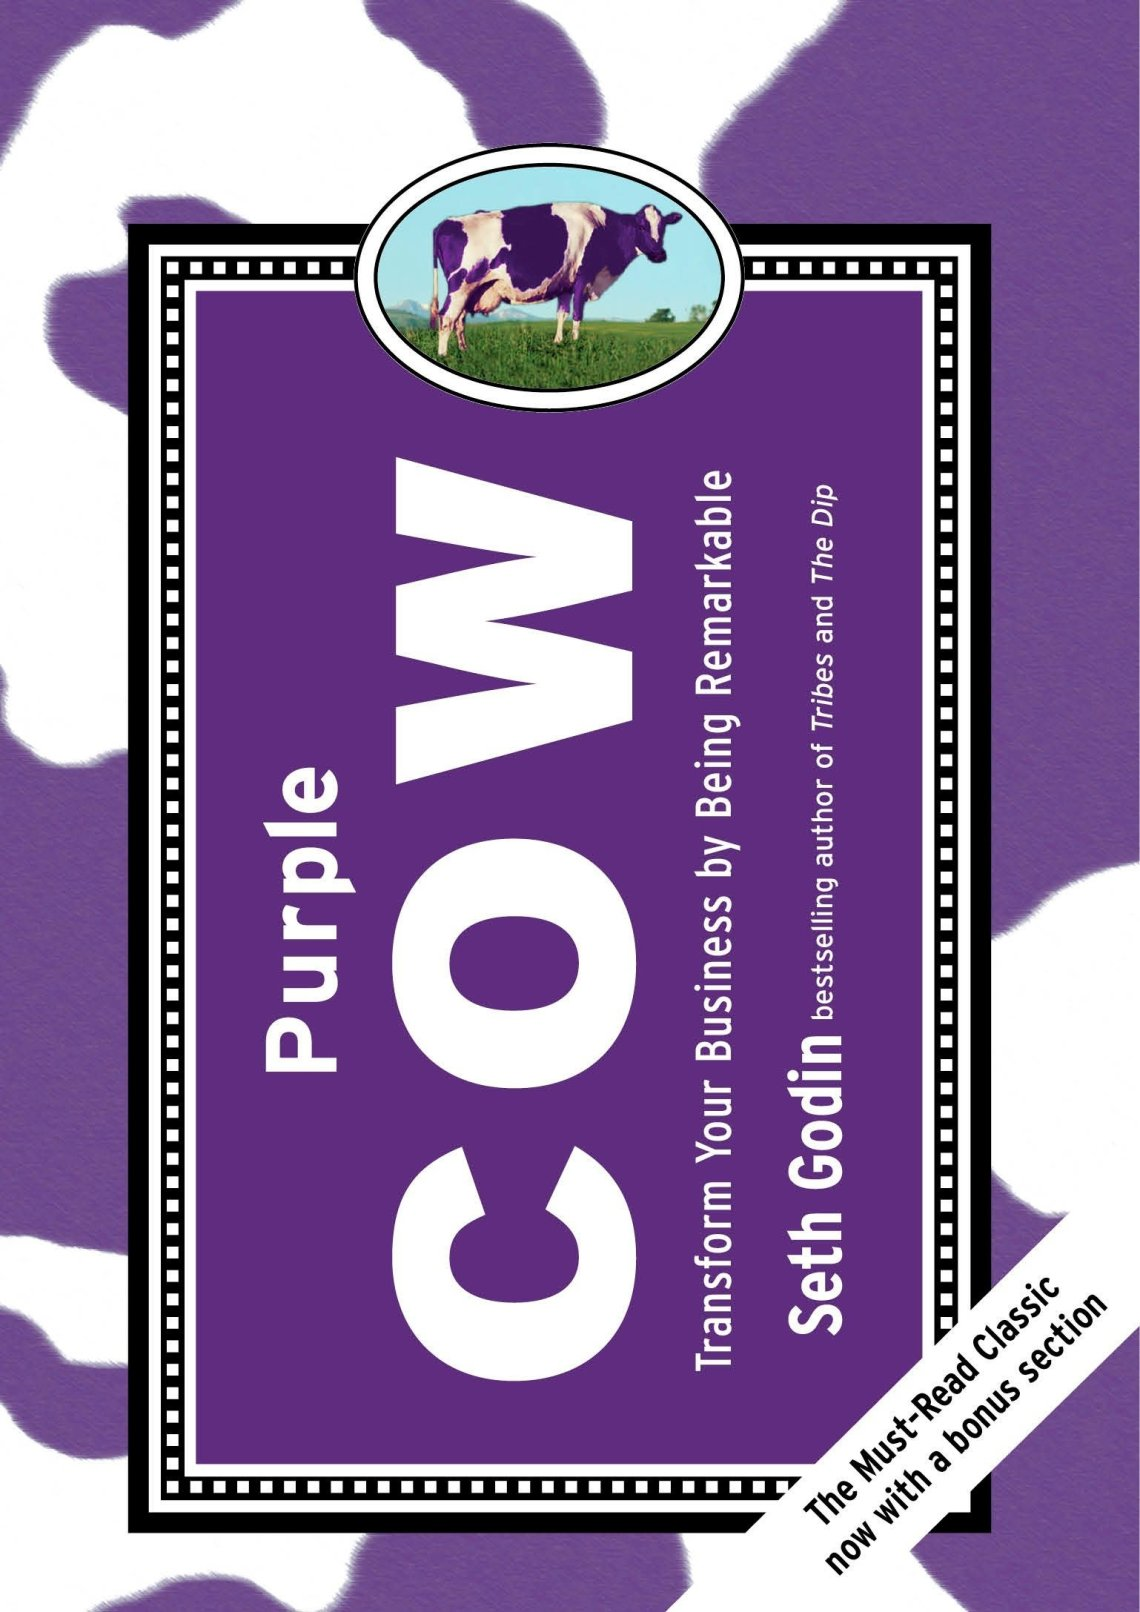 Purple Cow one of business books